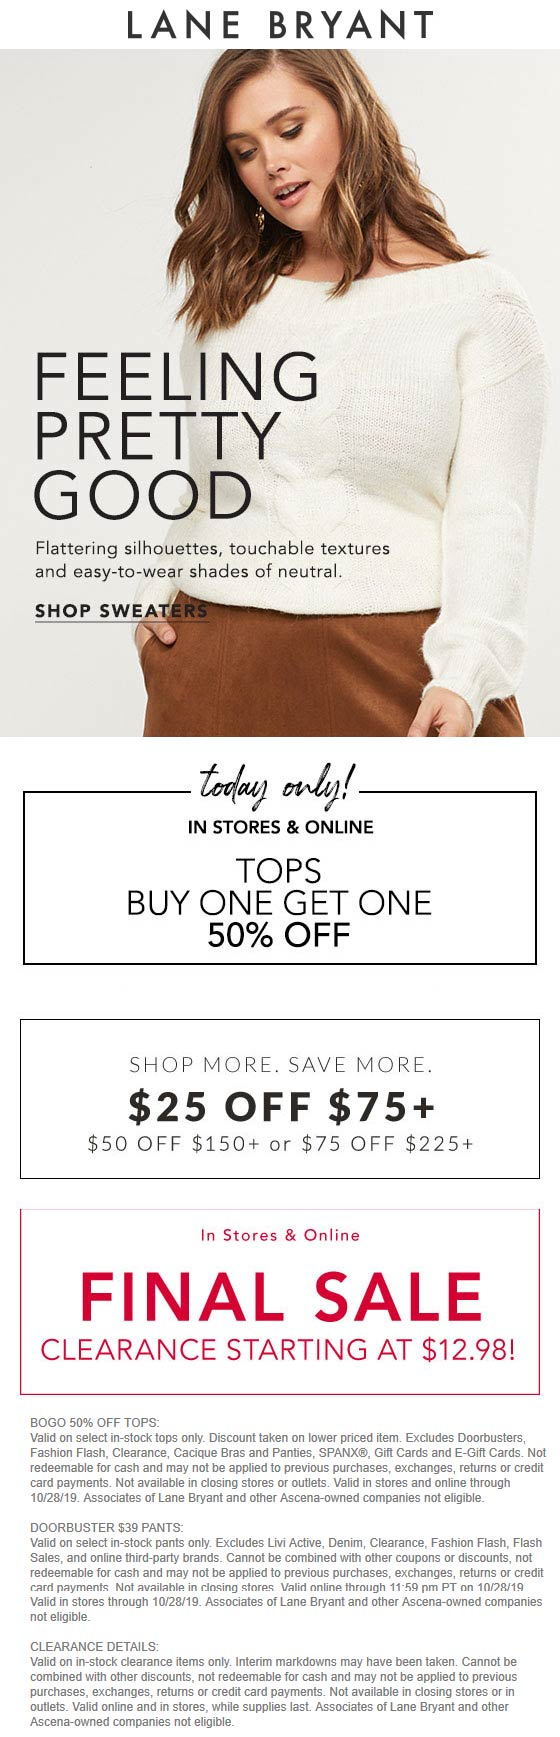 Lane Bryant Coupon November 2019 Second top 50% off today at Lane Bryant, ditto online